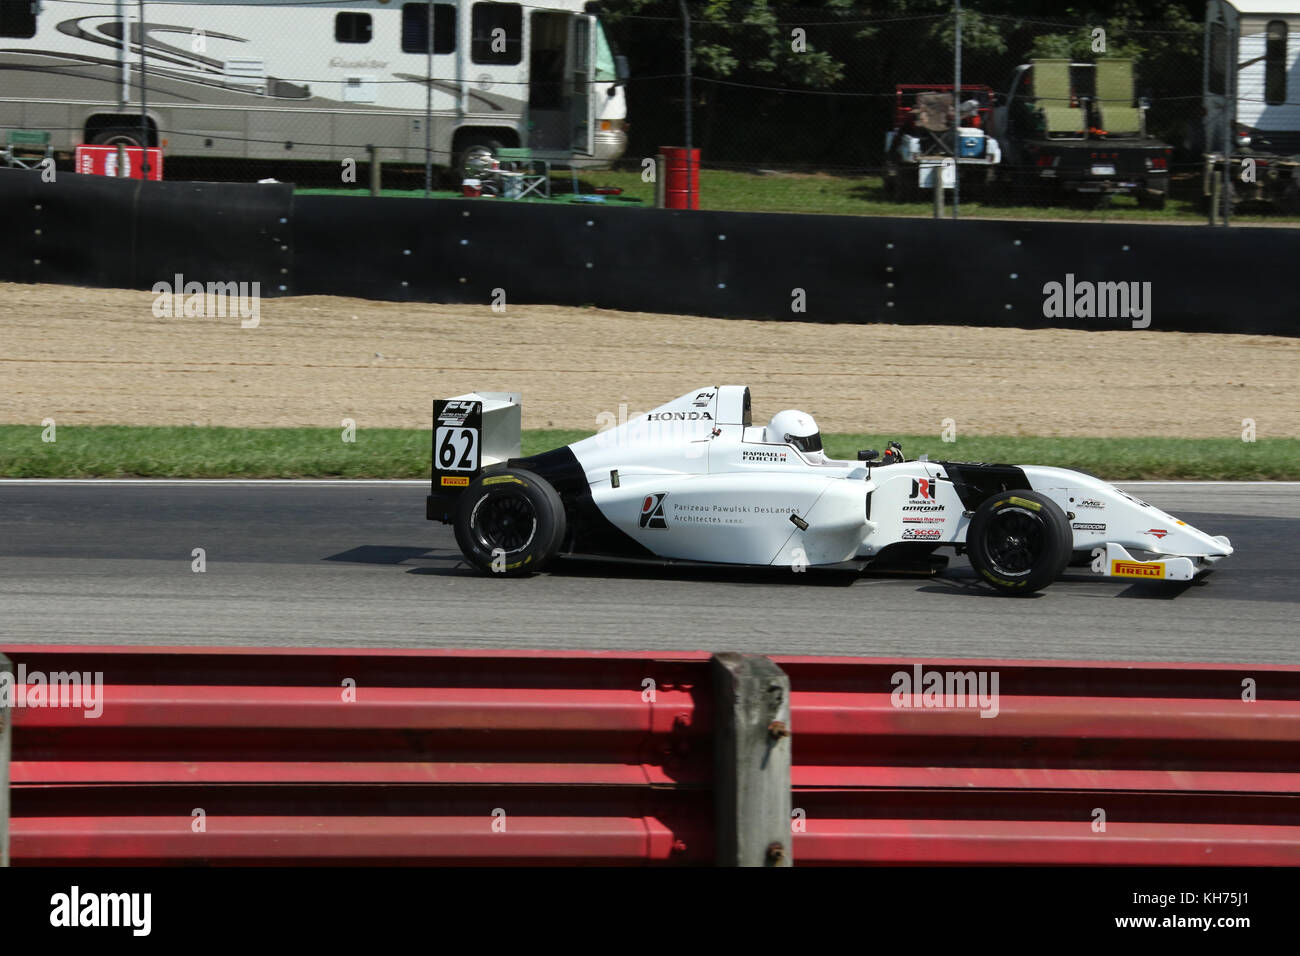 Raphael Forcier. Car 62. Sponsor Parizeau Pawulski Deslandes Architects. Formula 4 Race. Mid-Ohio Sports Car Course. - Stock Image